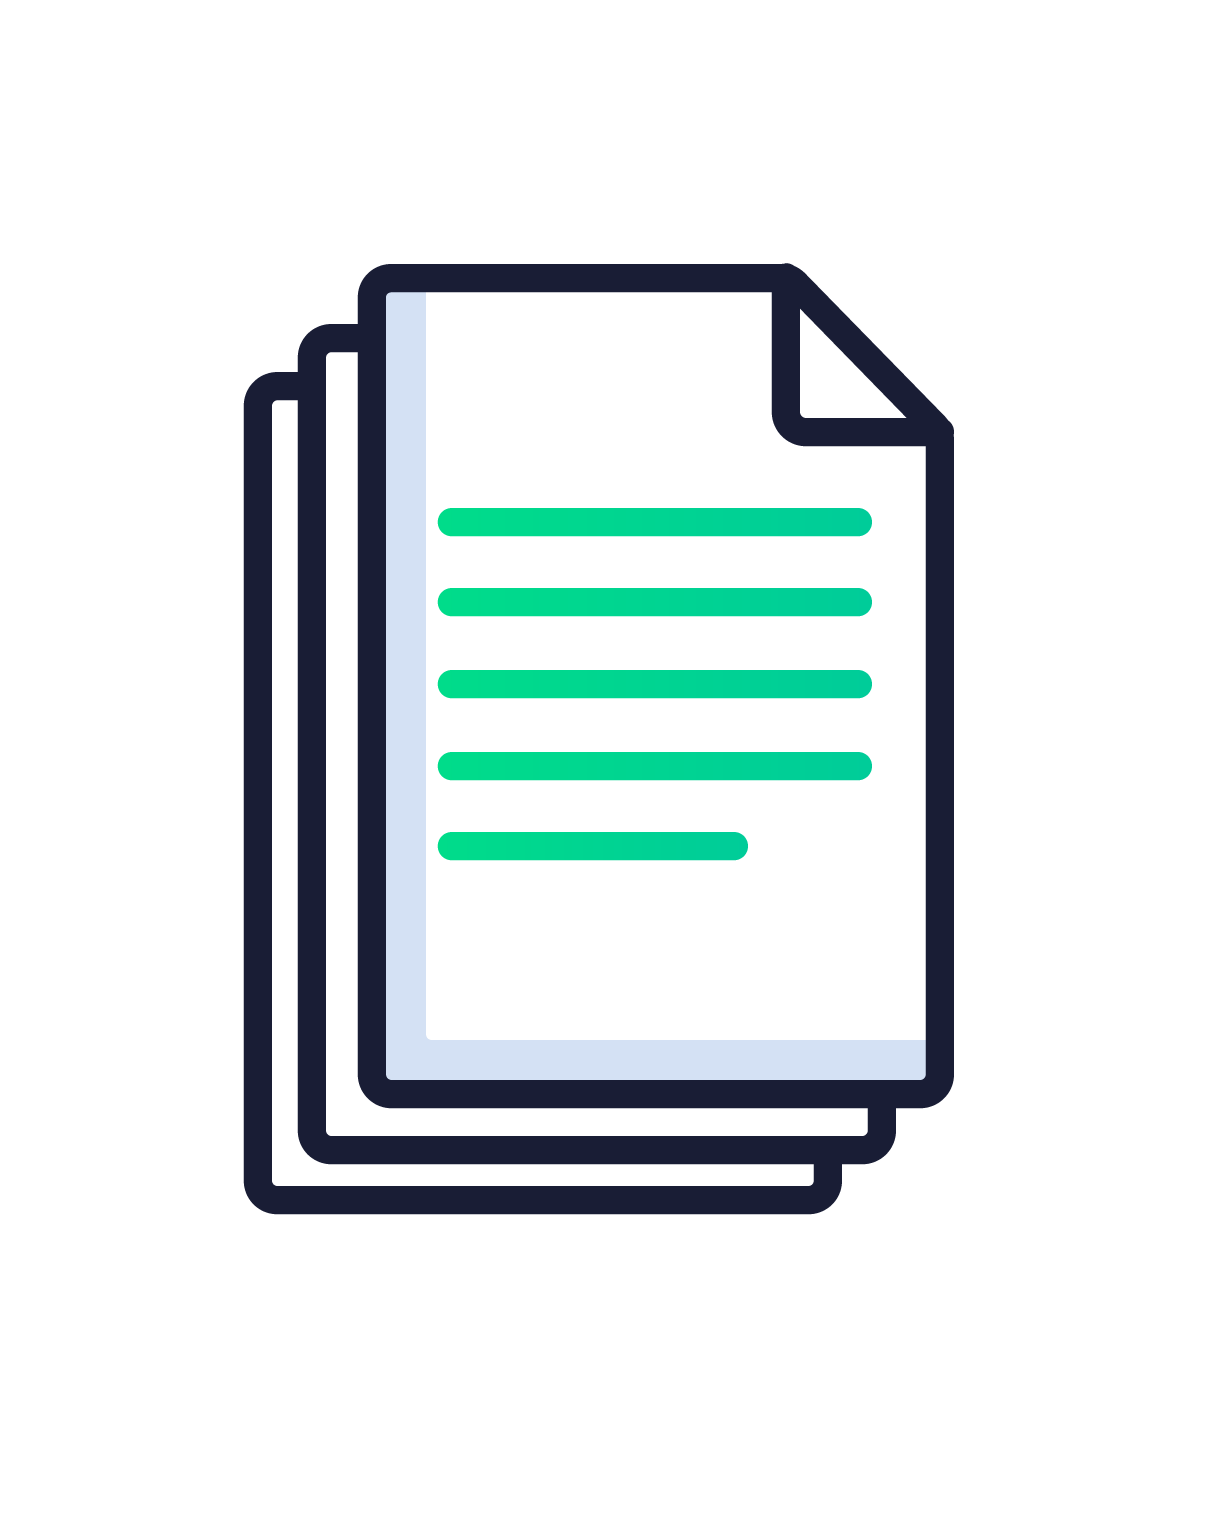 whitepaper-icon.png